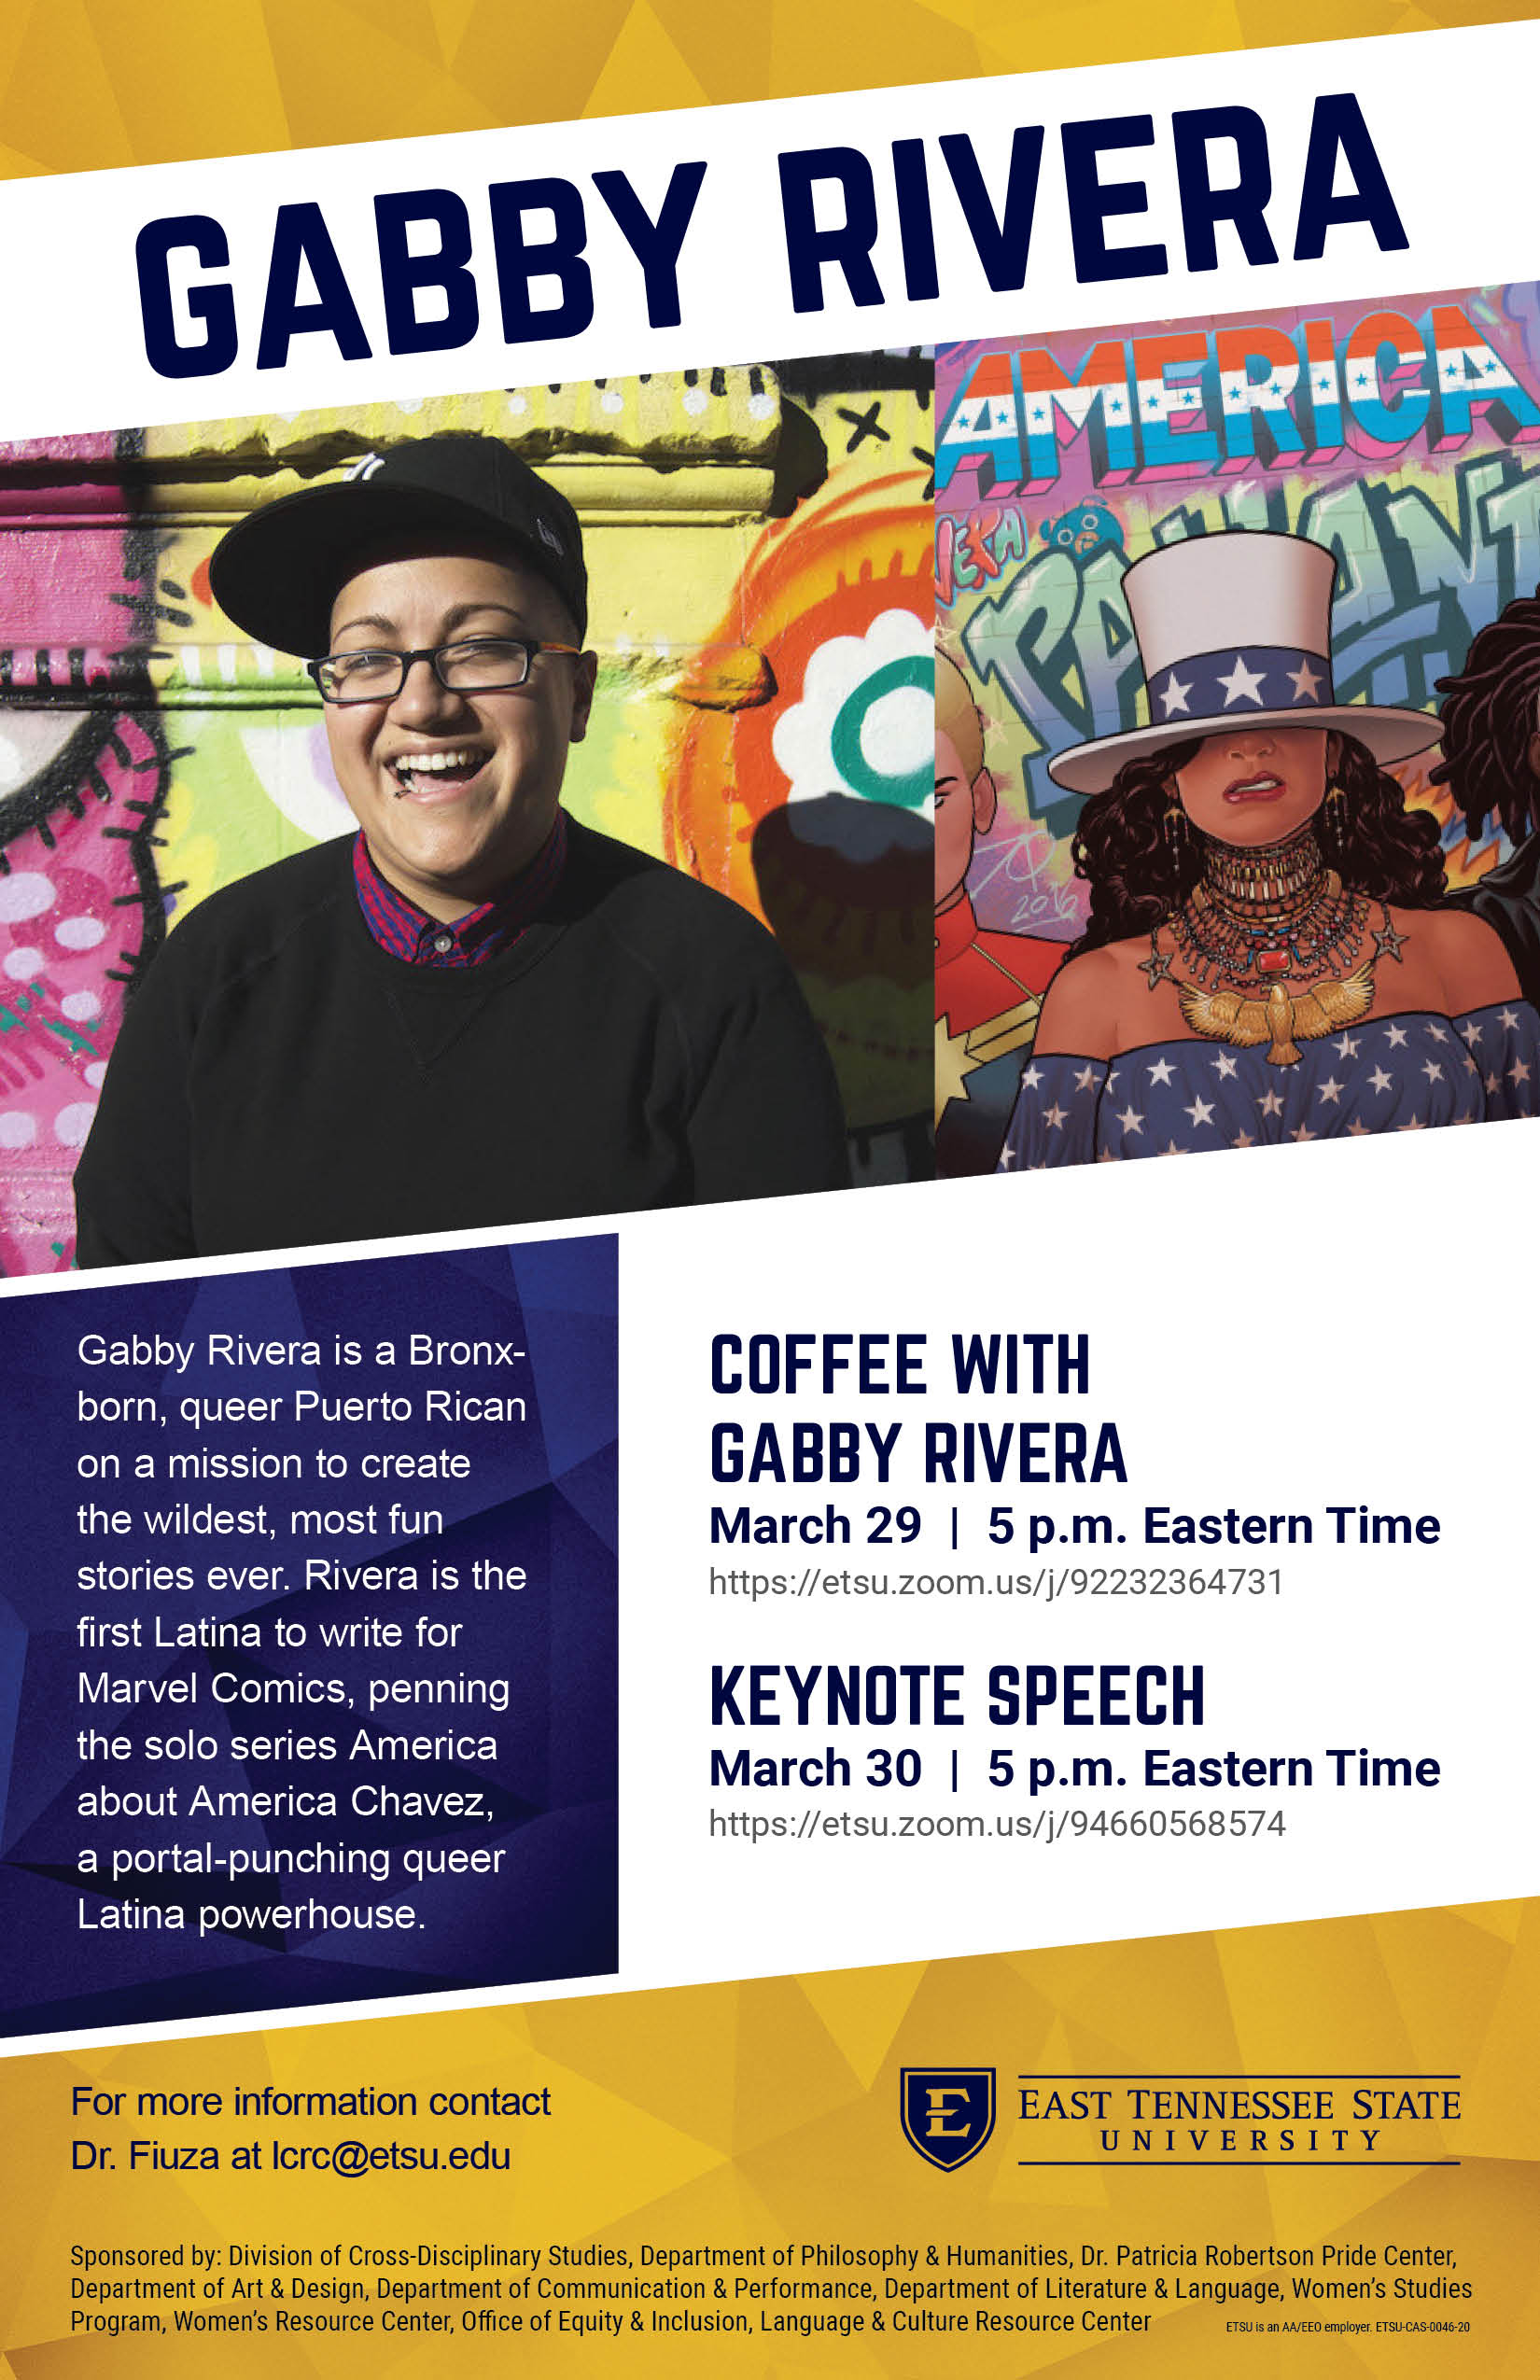 Gabby Rivera event March 29 and 30, 2021